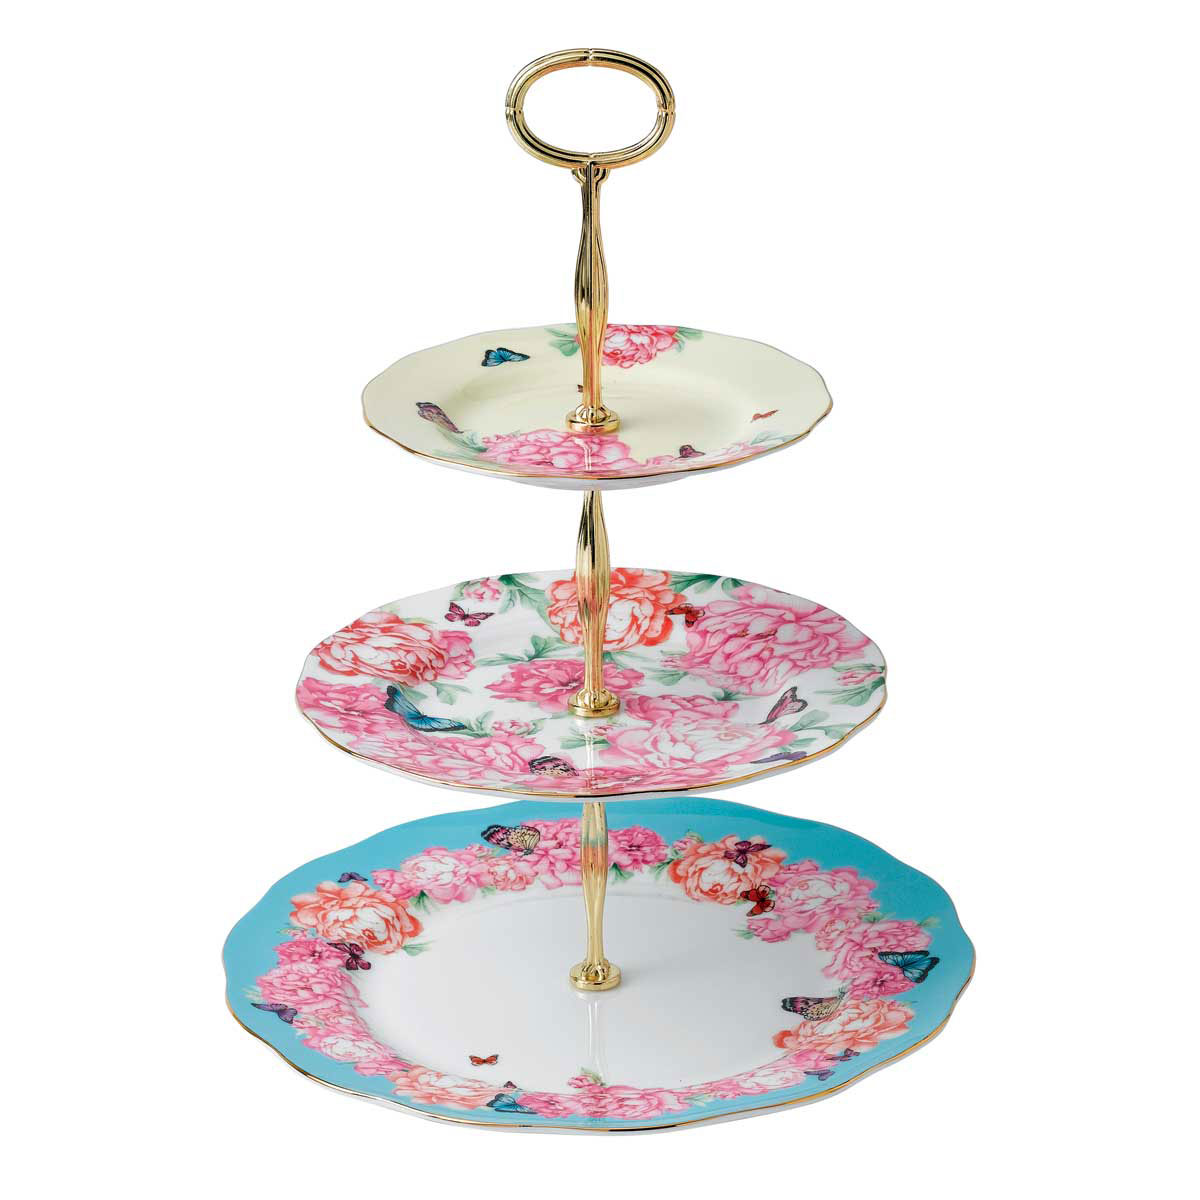 Miranda Kerr For Royal Albert Three Tier Cake Stand